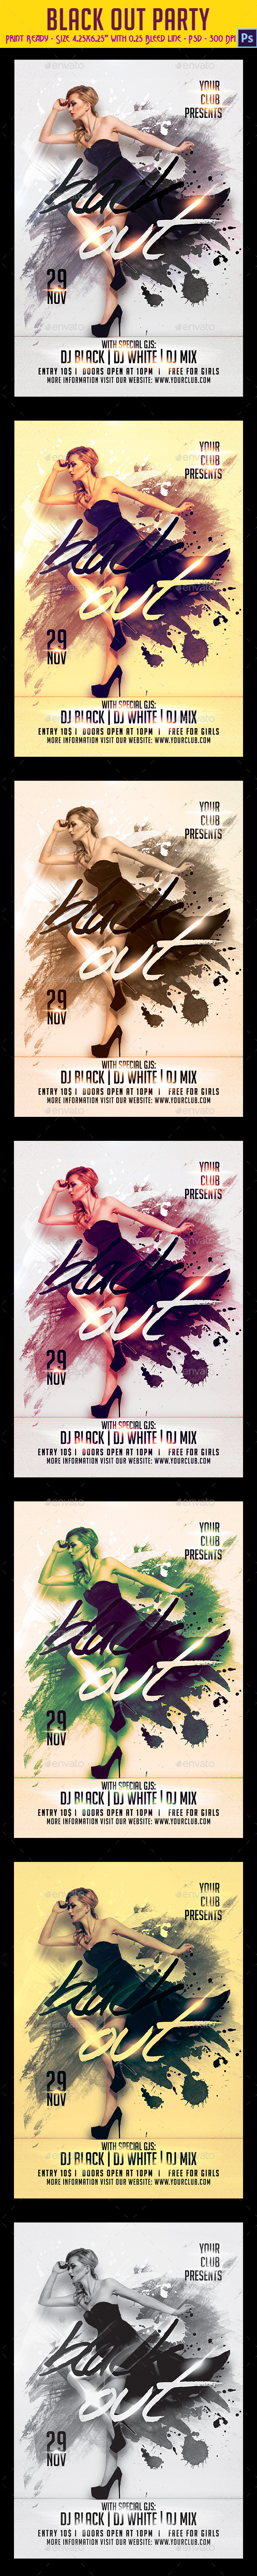 GraphicRiver Black Out Party Flyer 9663237